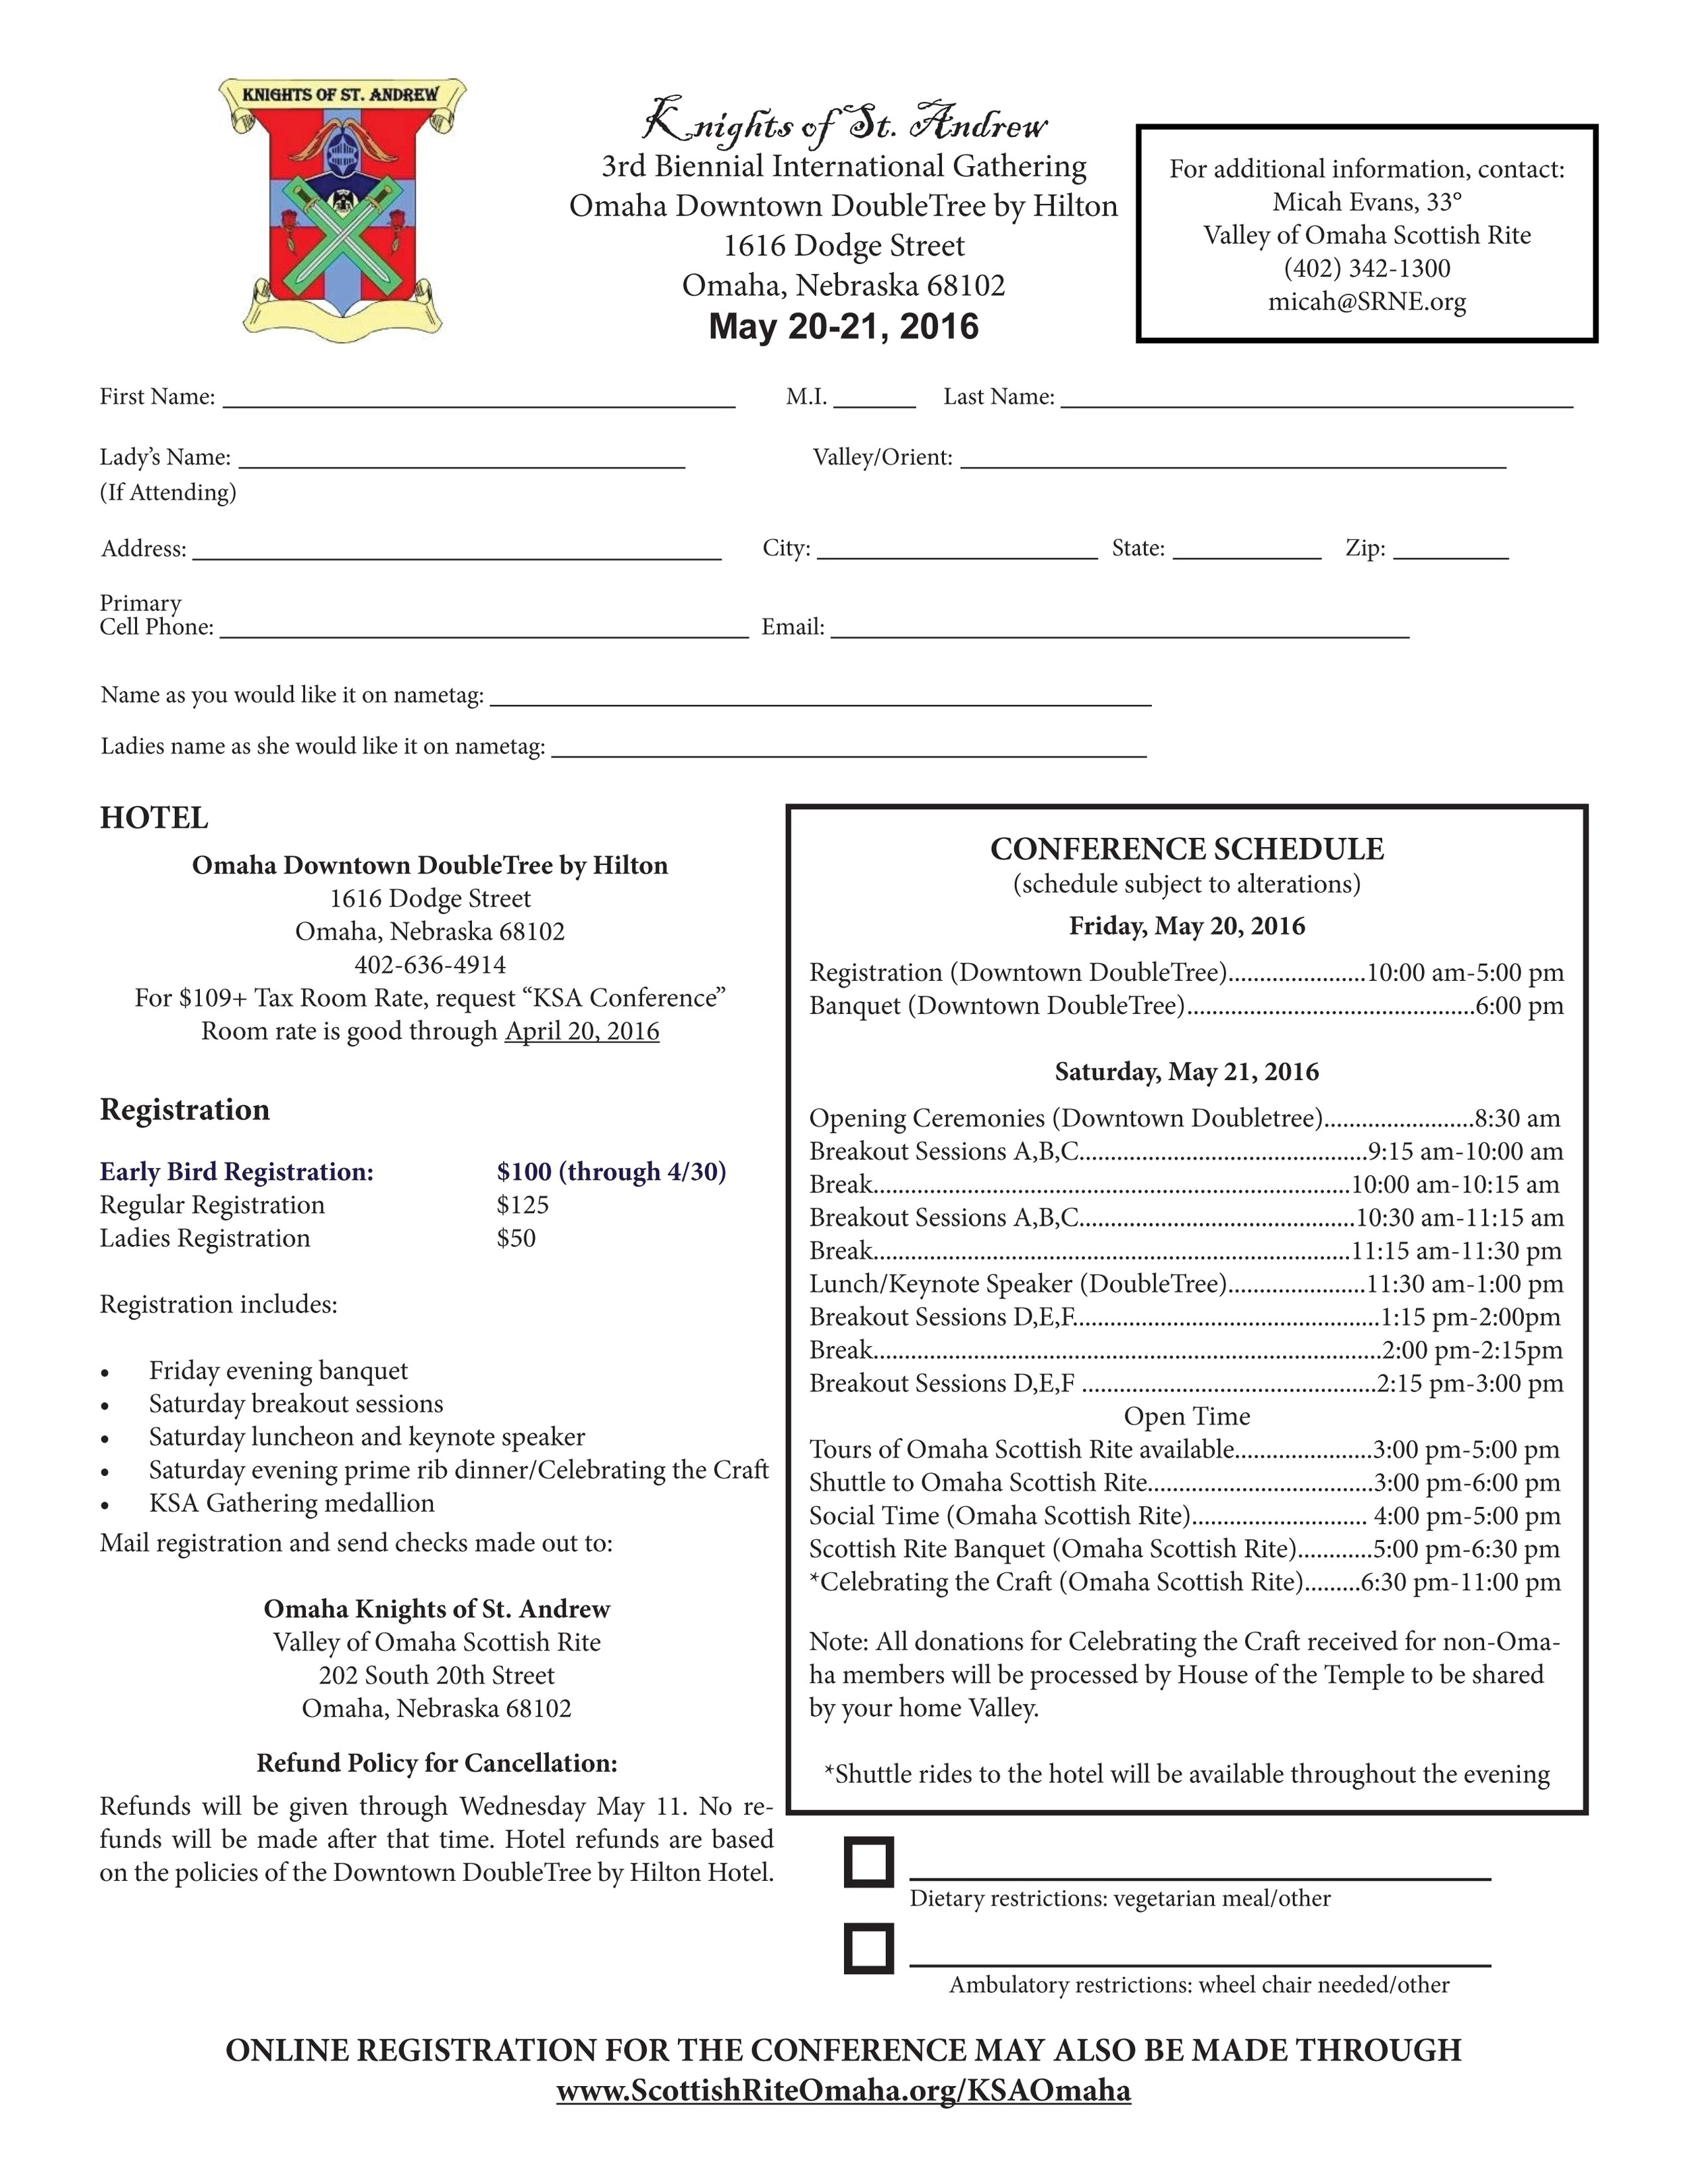 Click above to download a registration brochure to mail in.